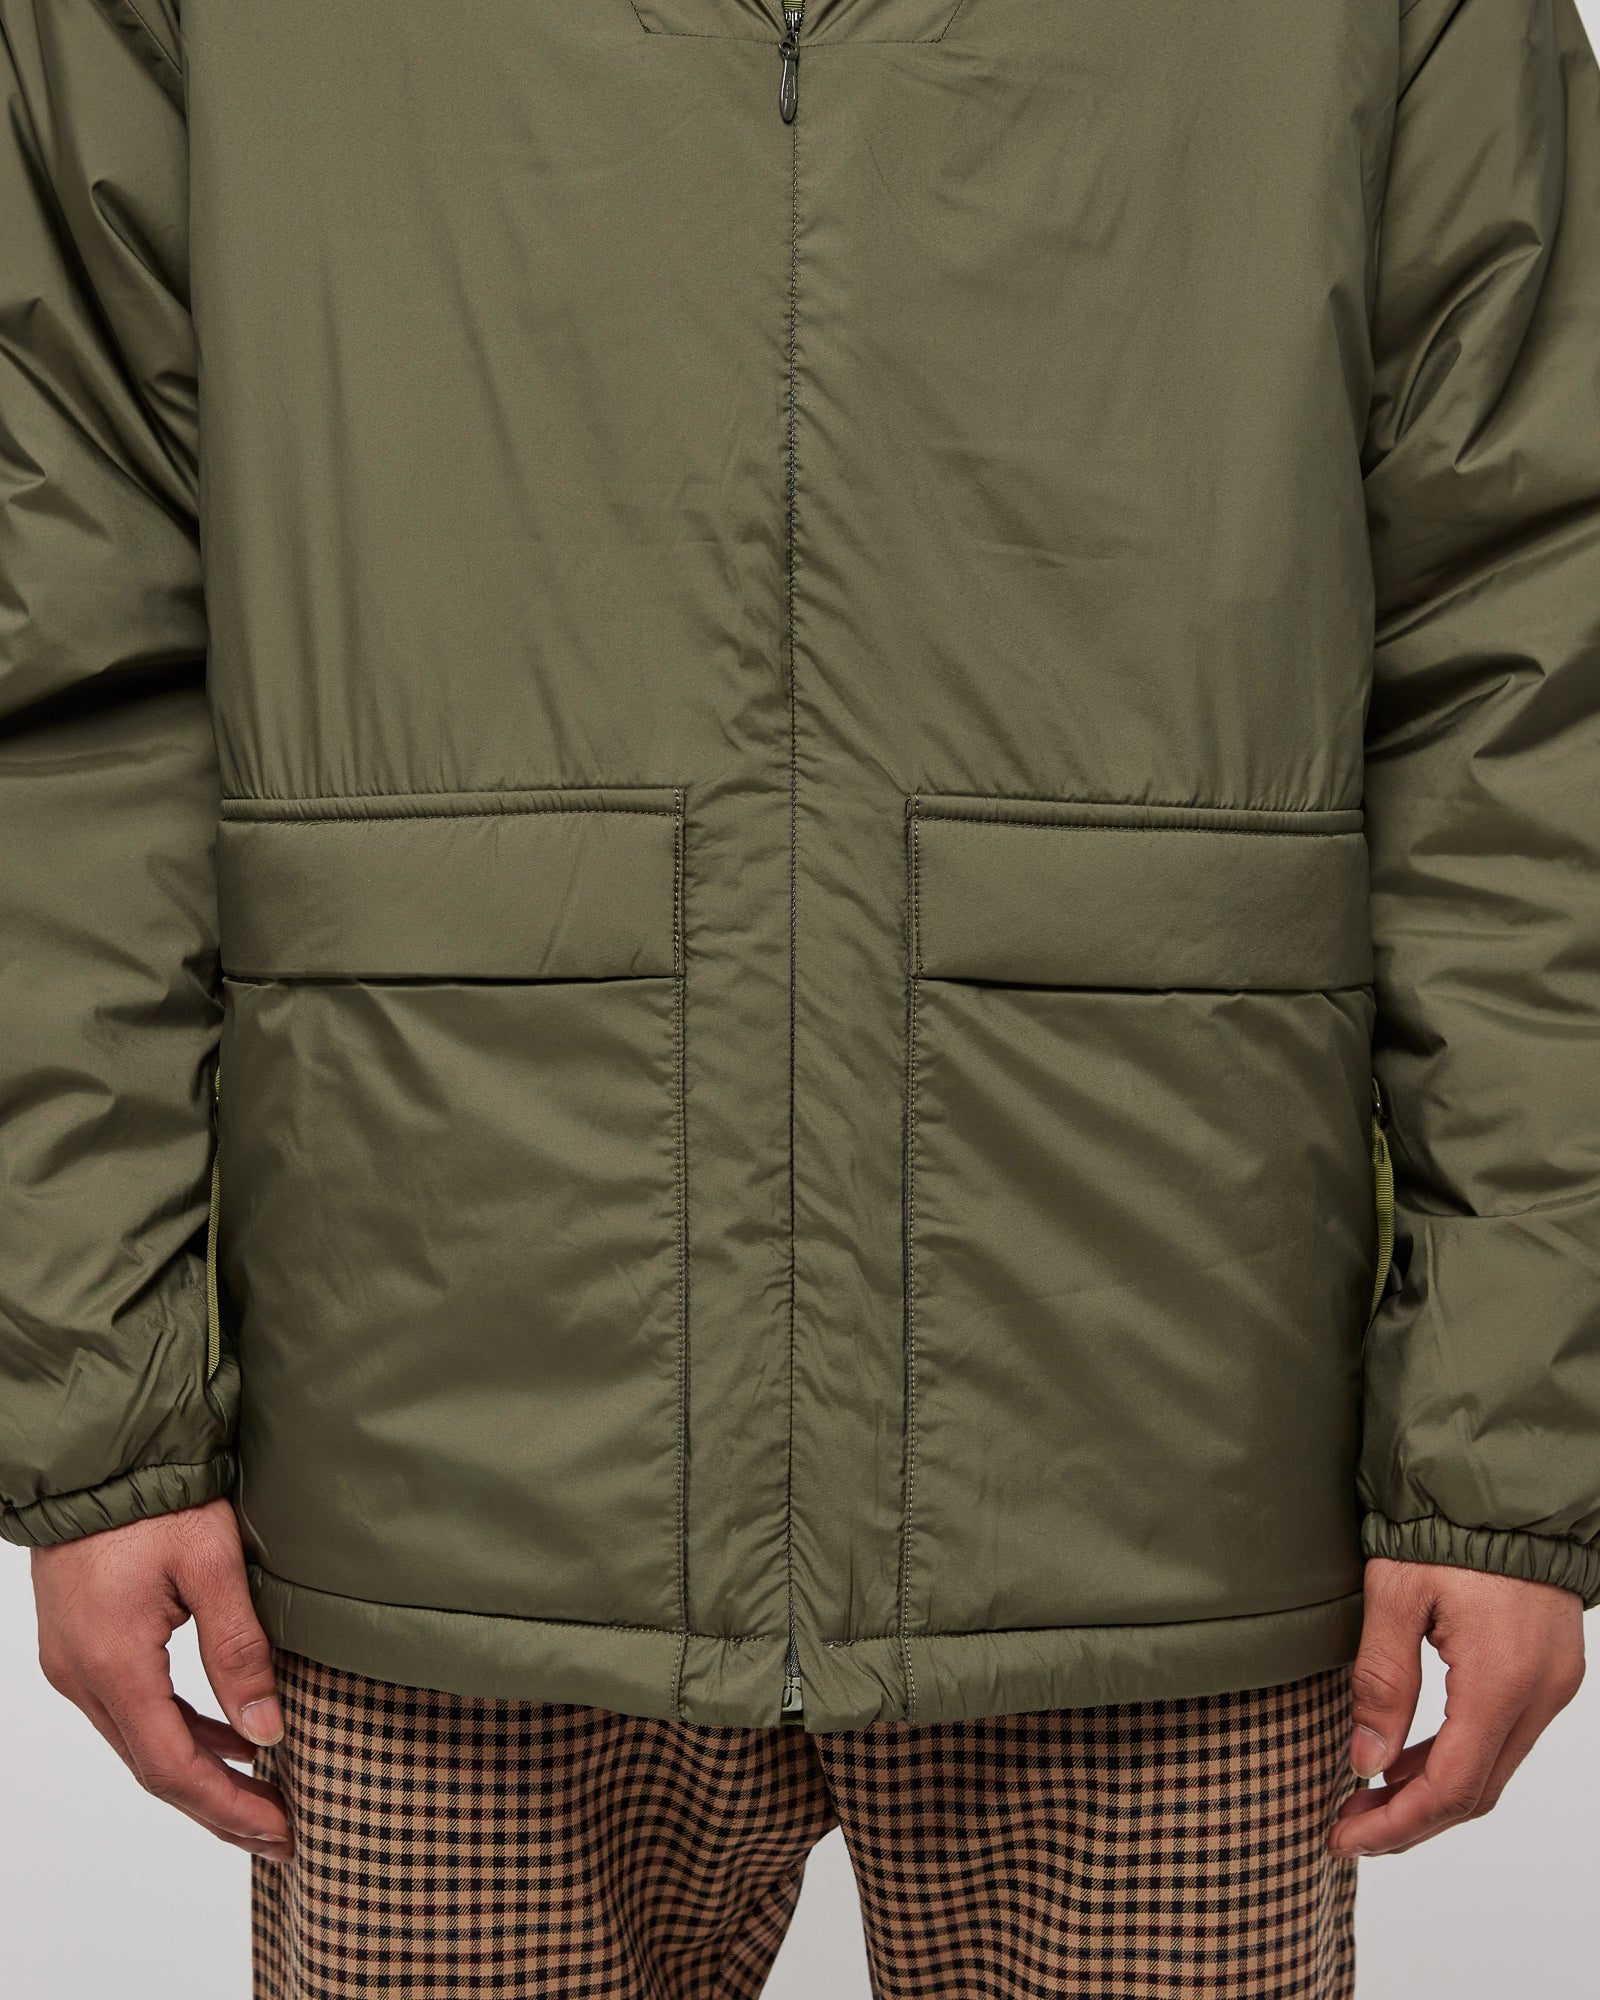 Nanamican Insulation Jacket in Khaki